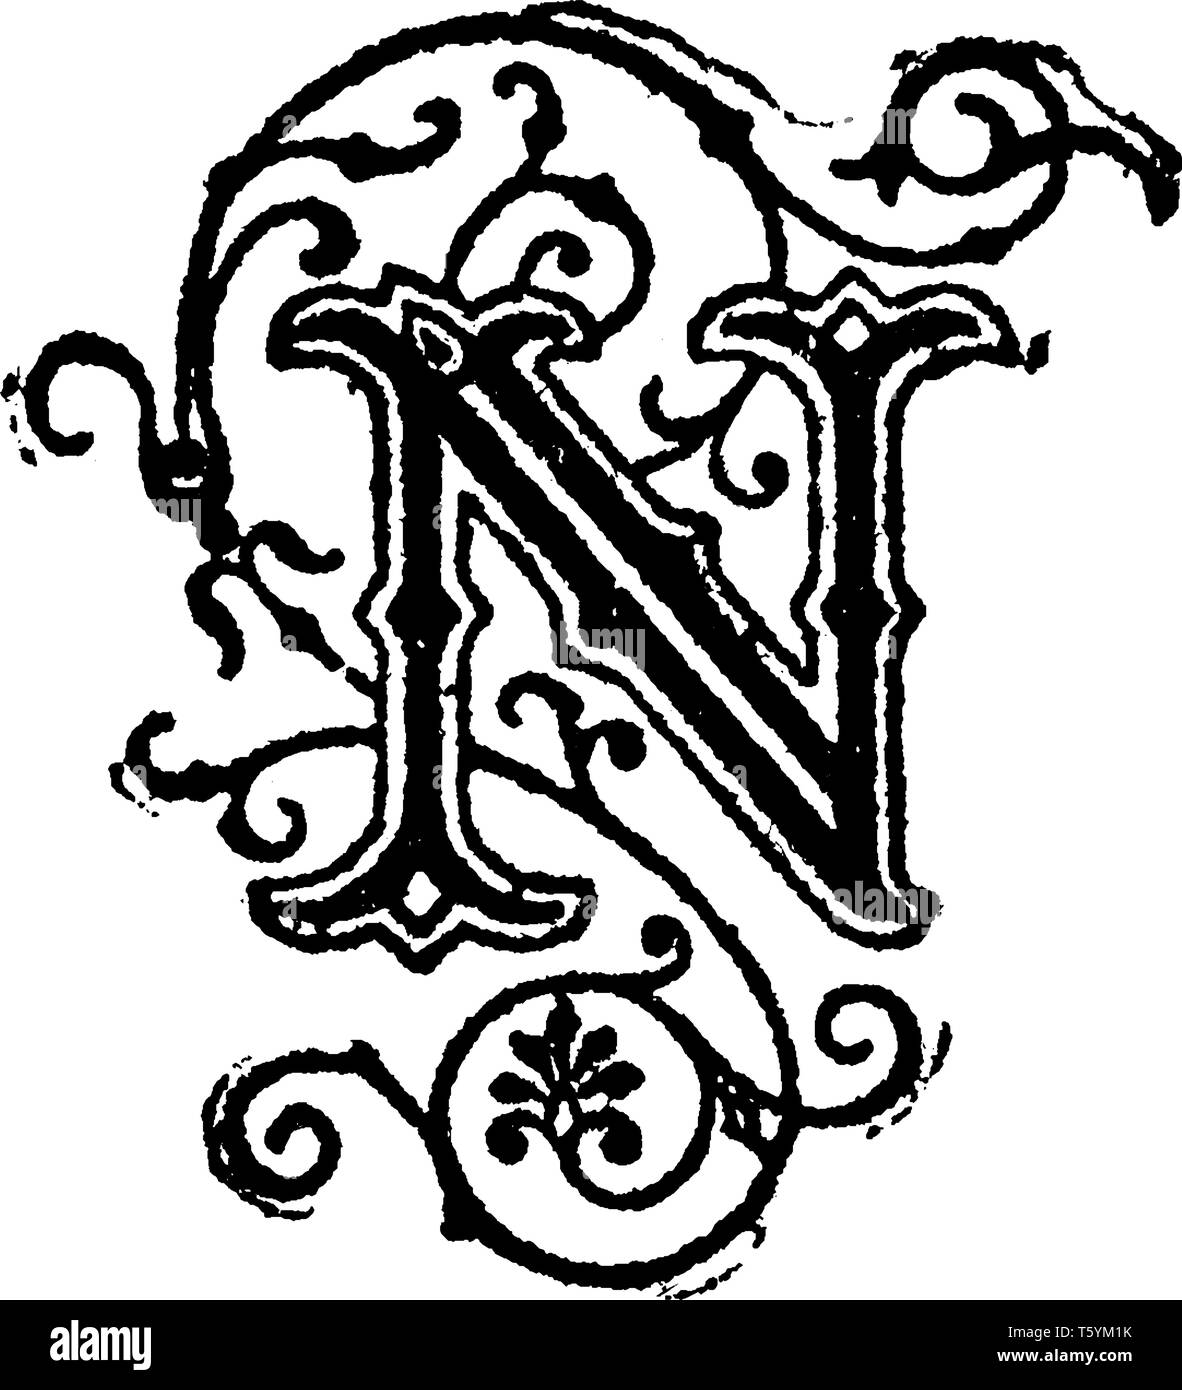 Decorative Letter A.A Decorative Letter N Vintage Line Drawing Or Engraving